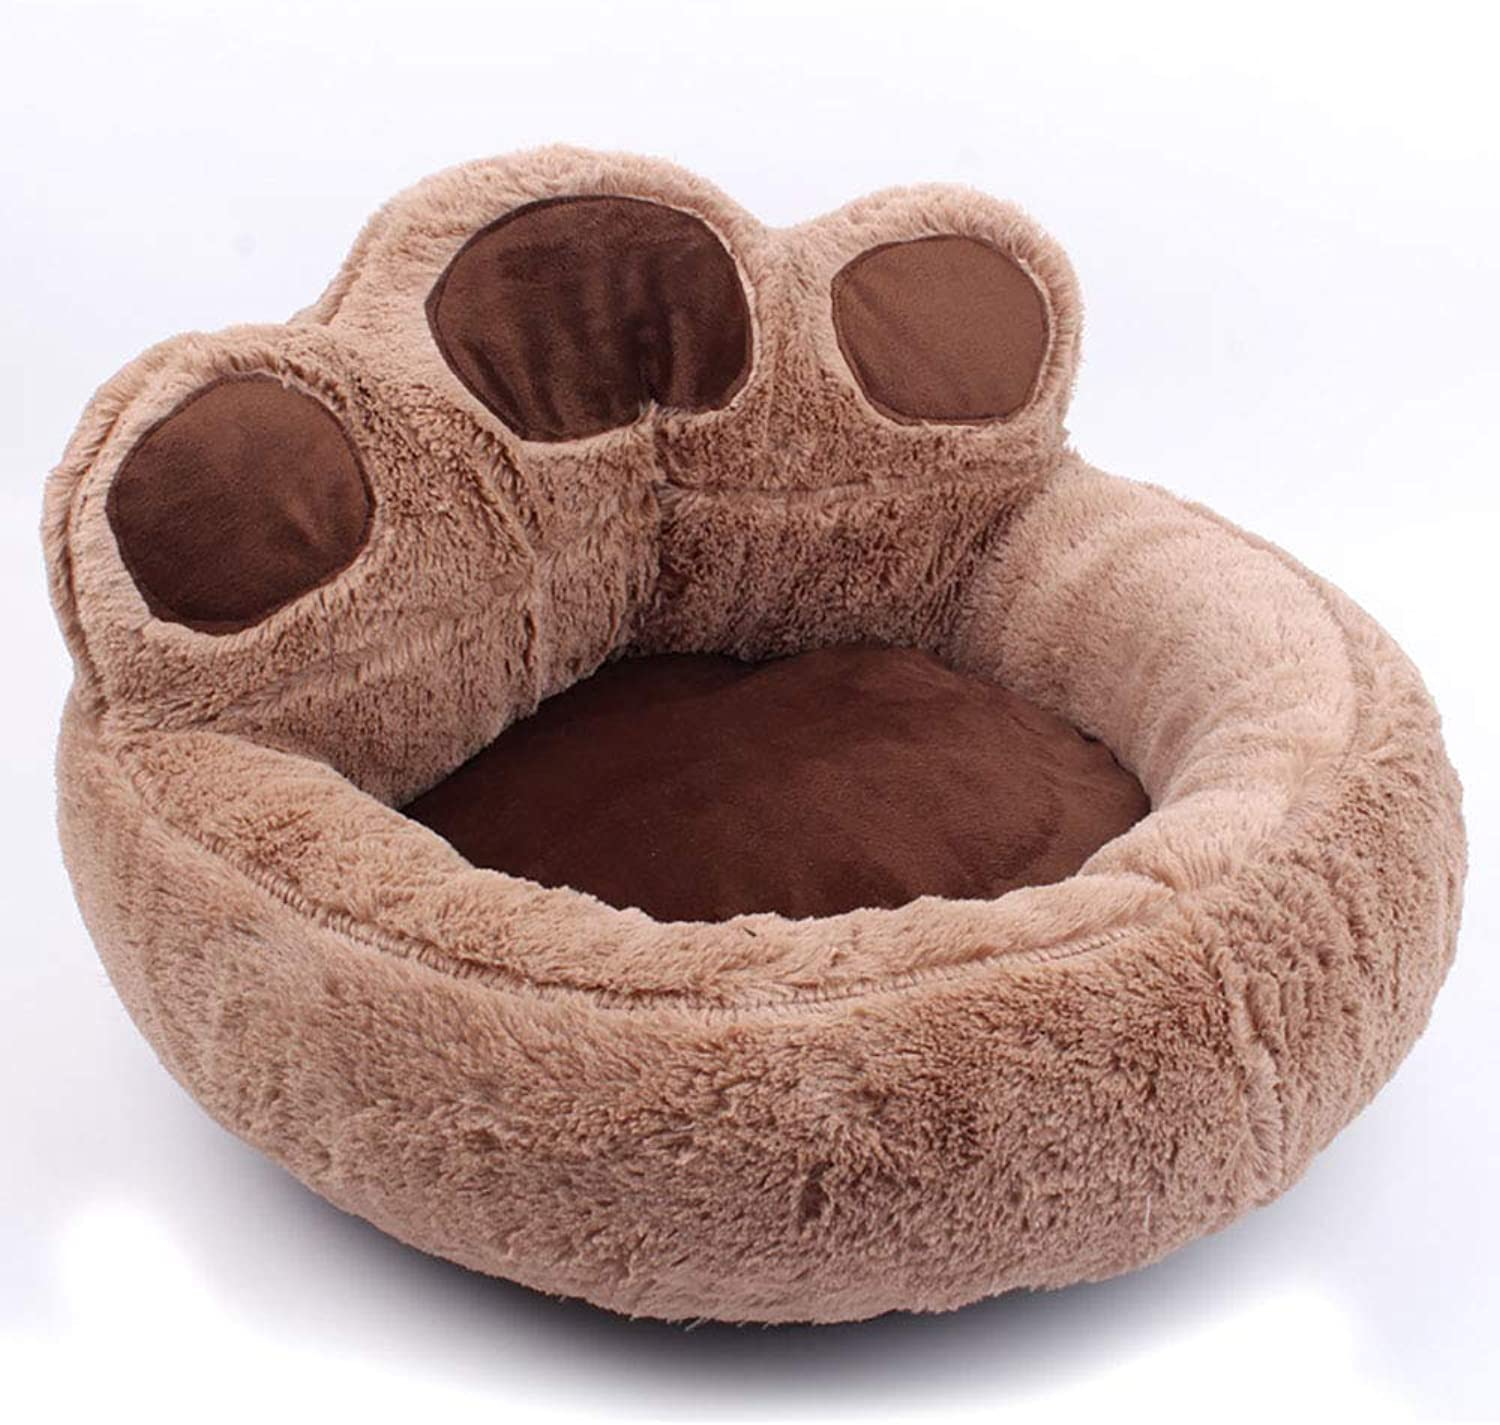 QNMM Cute Bear Paw Shaped Dog Beds Waterproof Pet Cat Bed Mat Sofa Warm Cozy Dog Beds For Small Large Dogs Cat Pet House,S